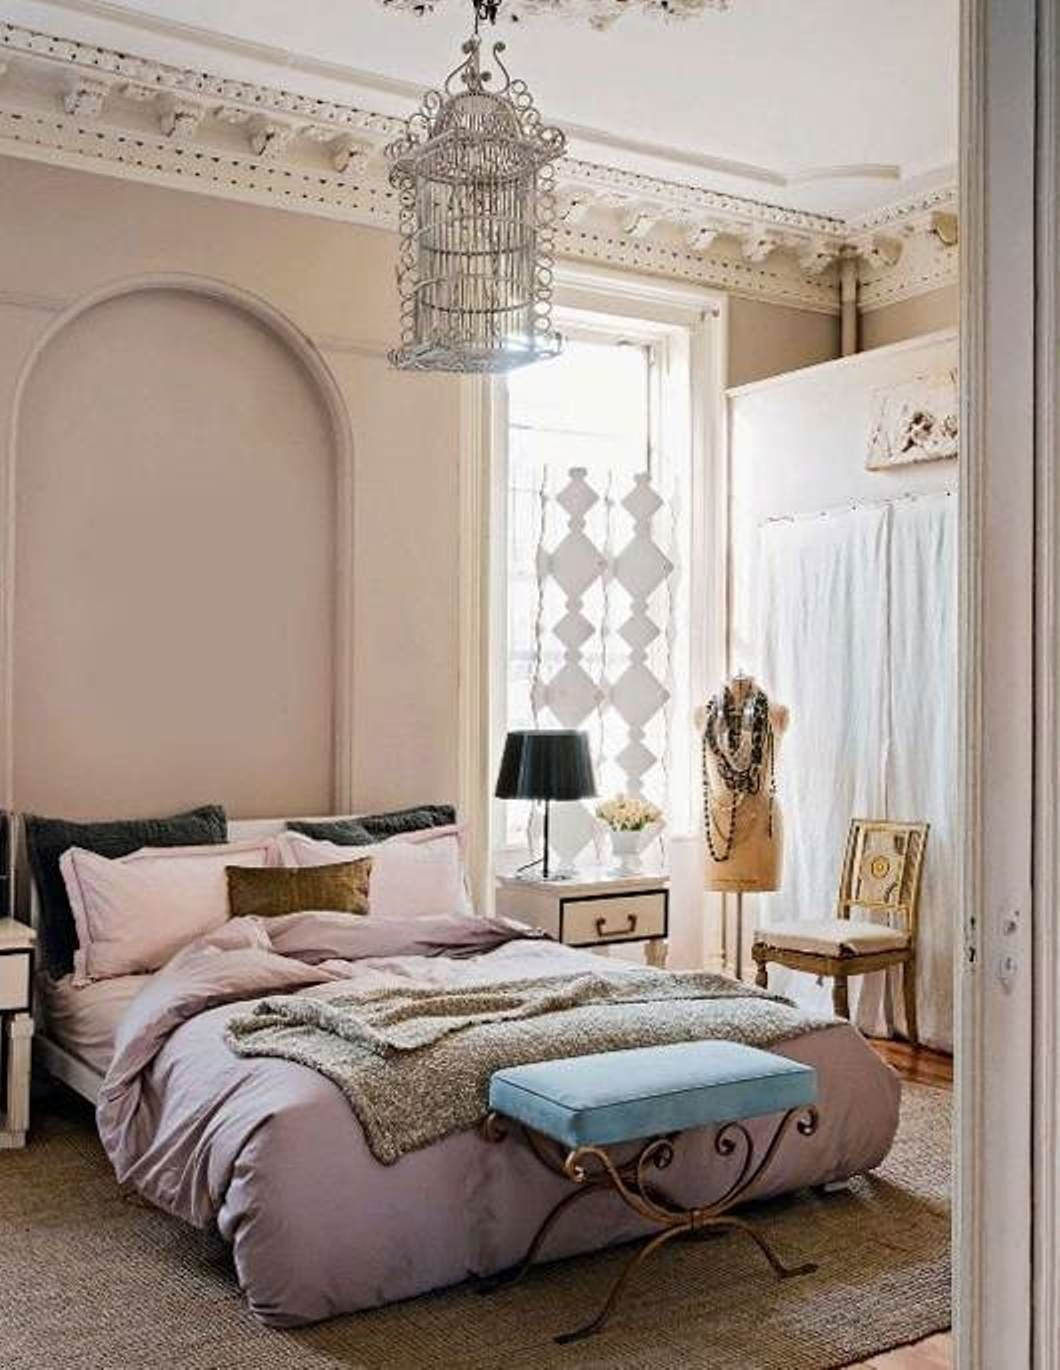 Awesome Lovely Chic Bedroom Decorating Ideas for Women Every woman